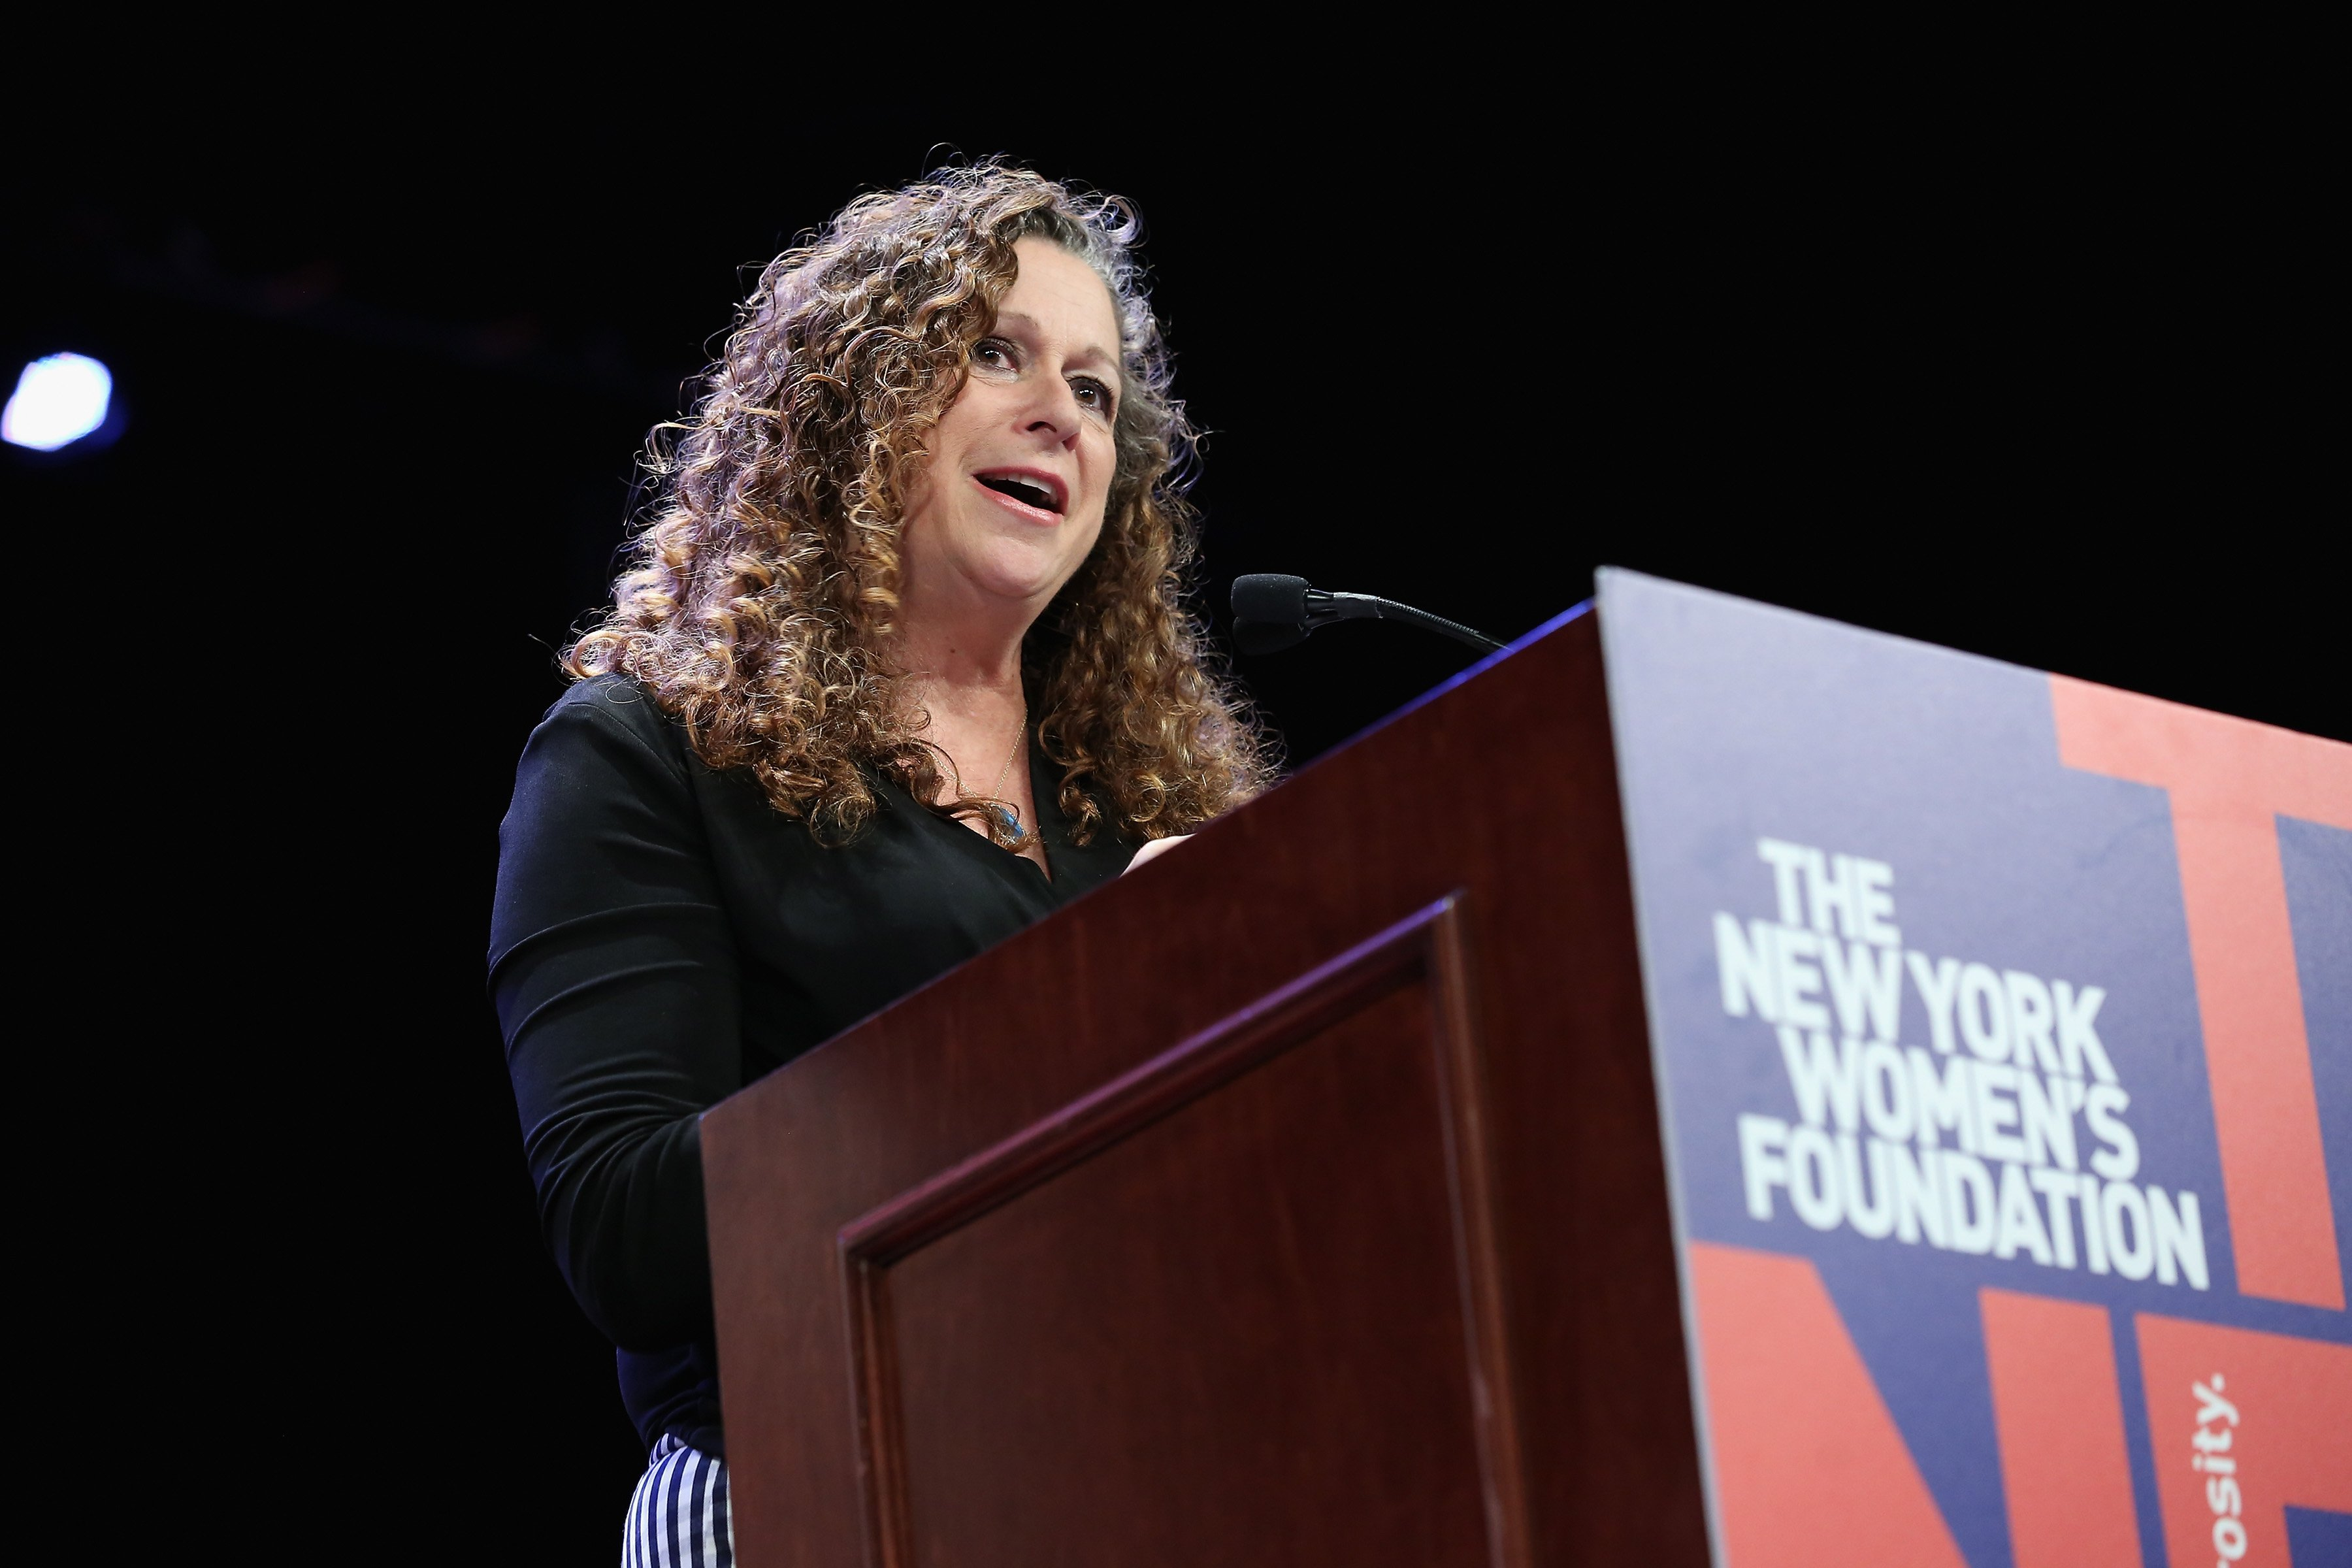 Abigail Disney visited Disneyland. She is 'livid' about what she saw